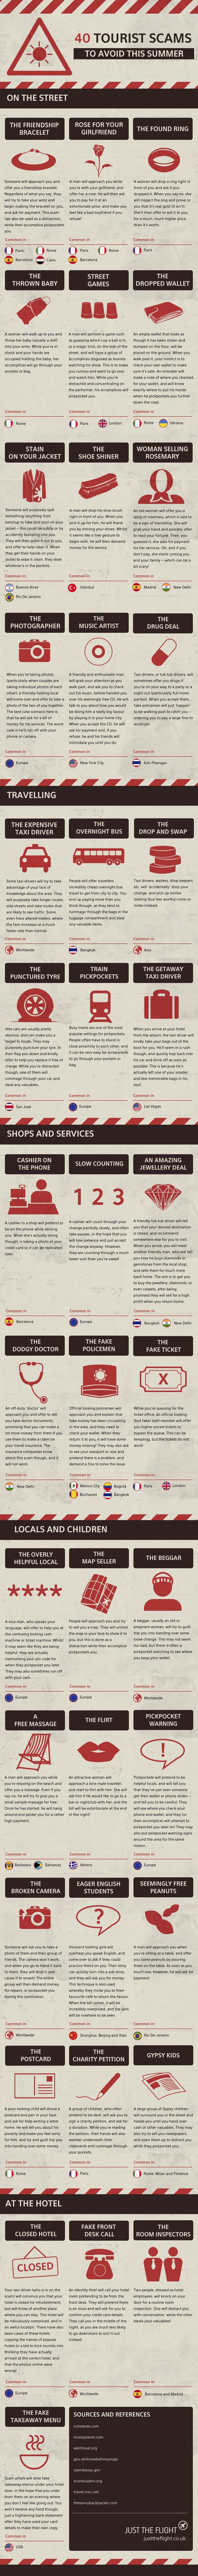 The biggest scams that tourists need to look out for